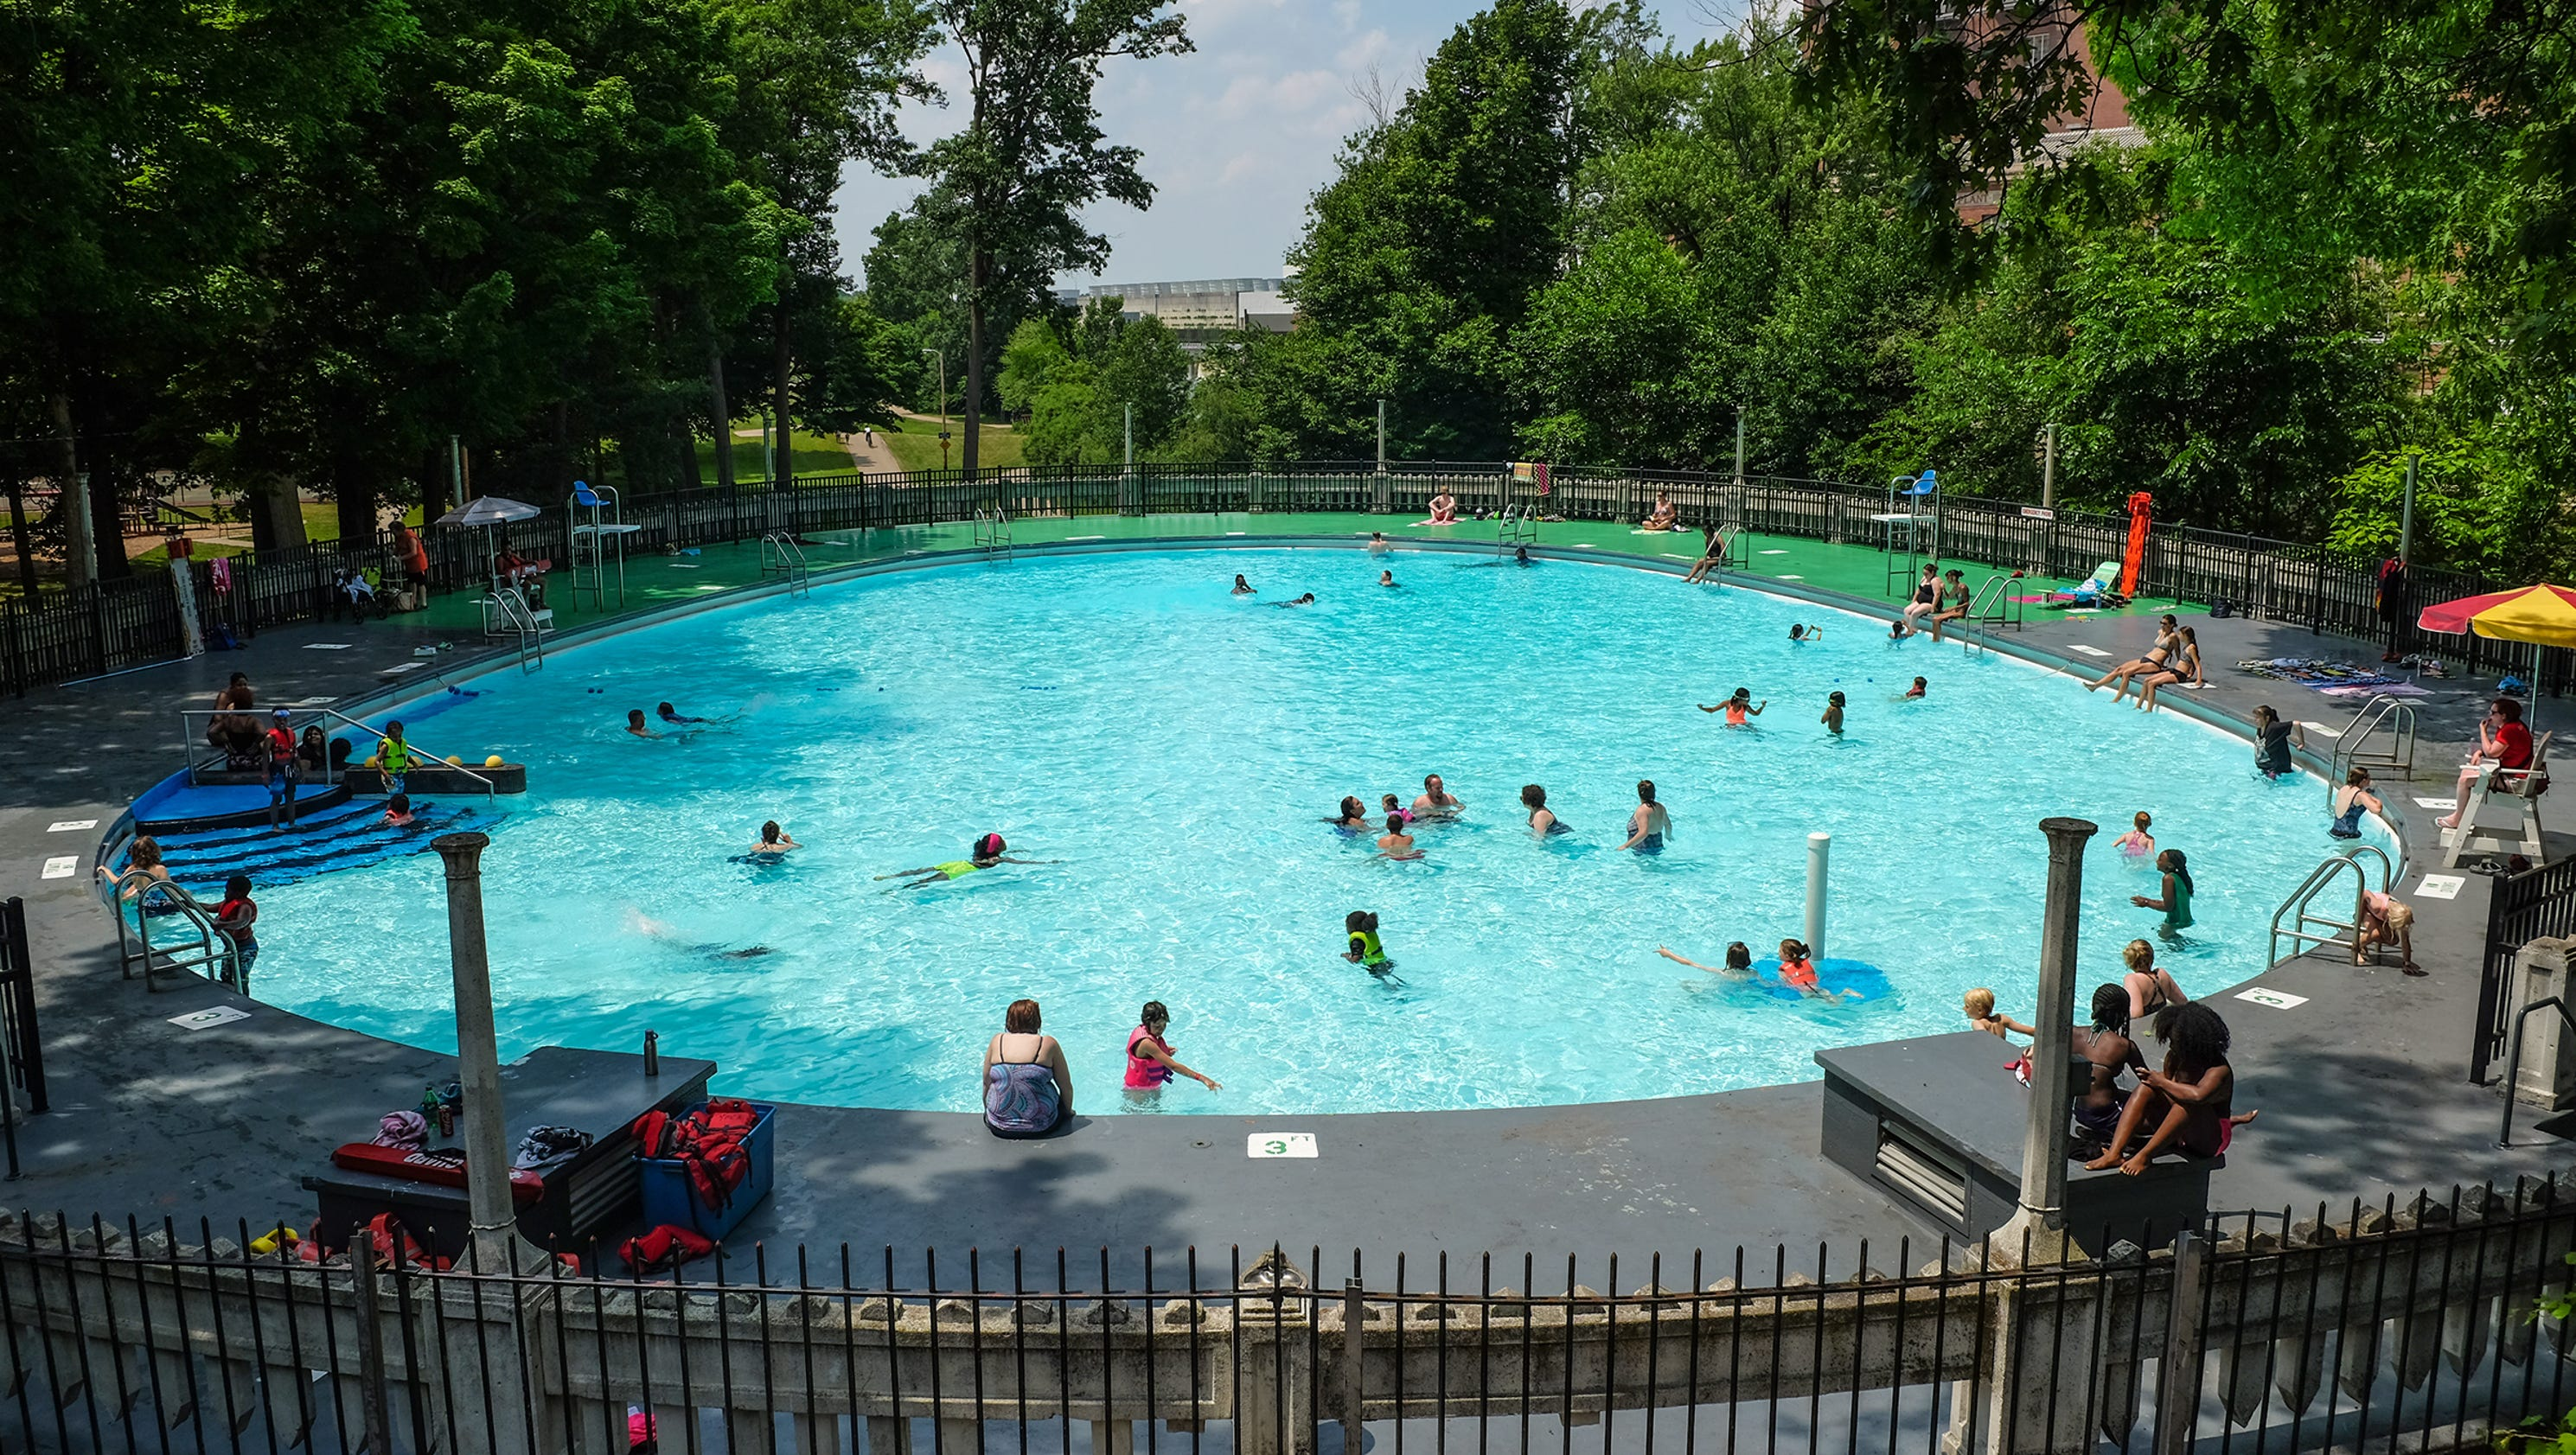 Moores Park Pool Is One Of The Few Bintz Pools Still Operating